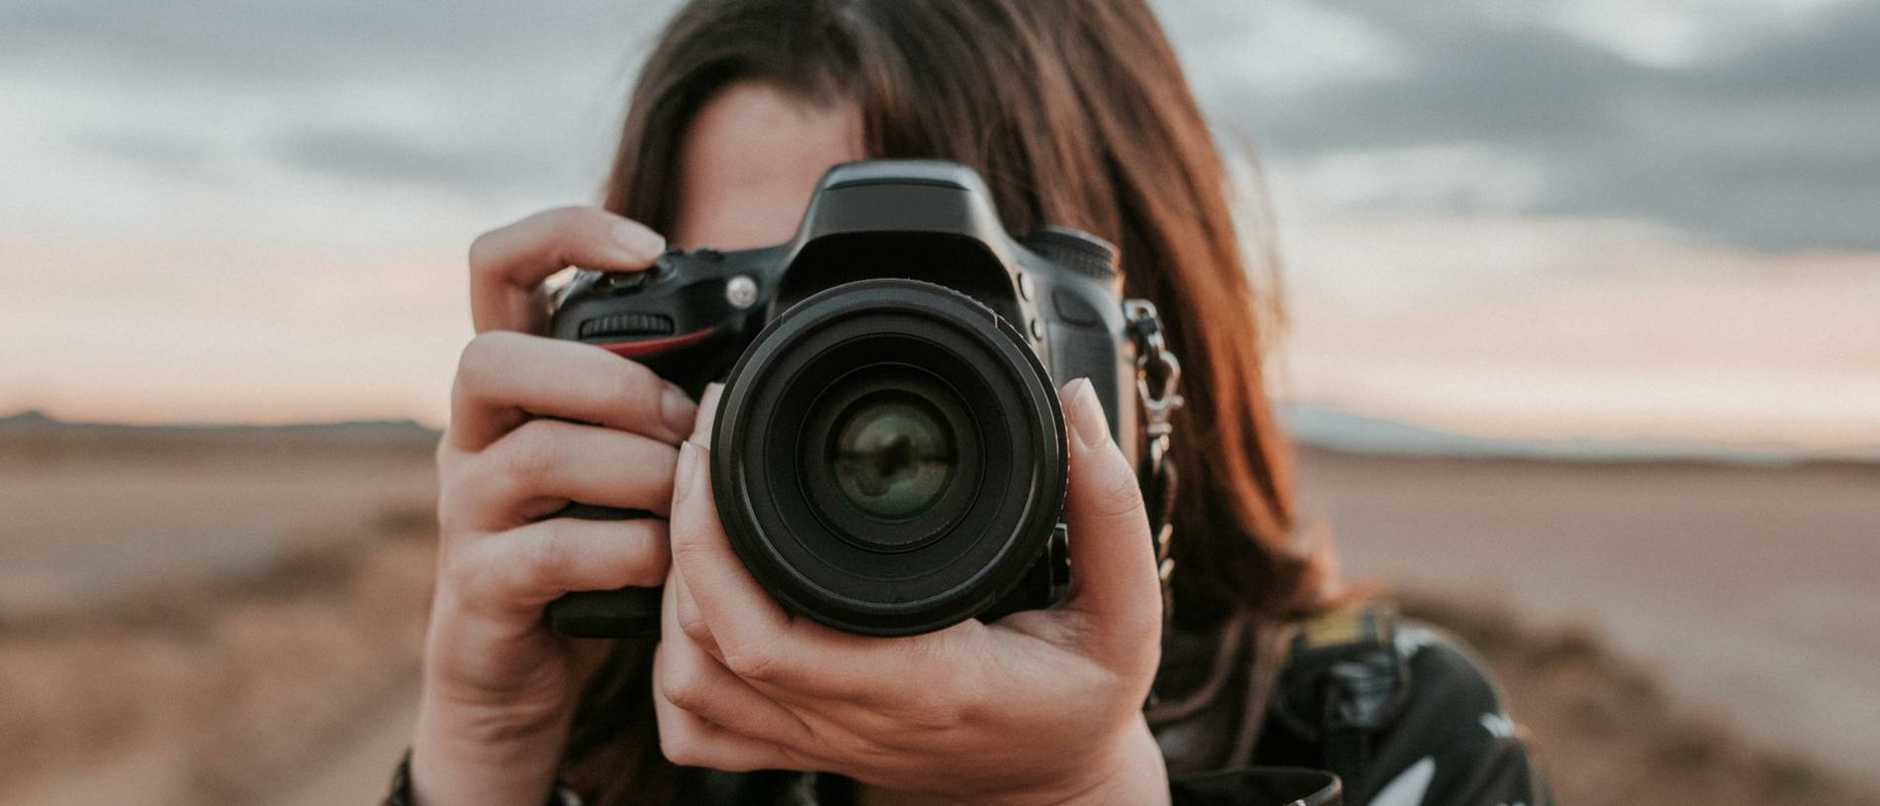 Put down your smartphone and pick up a camera: that's the message from the world's top photographic firms that are queuing up to launch new products.